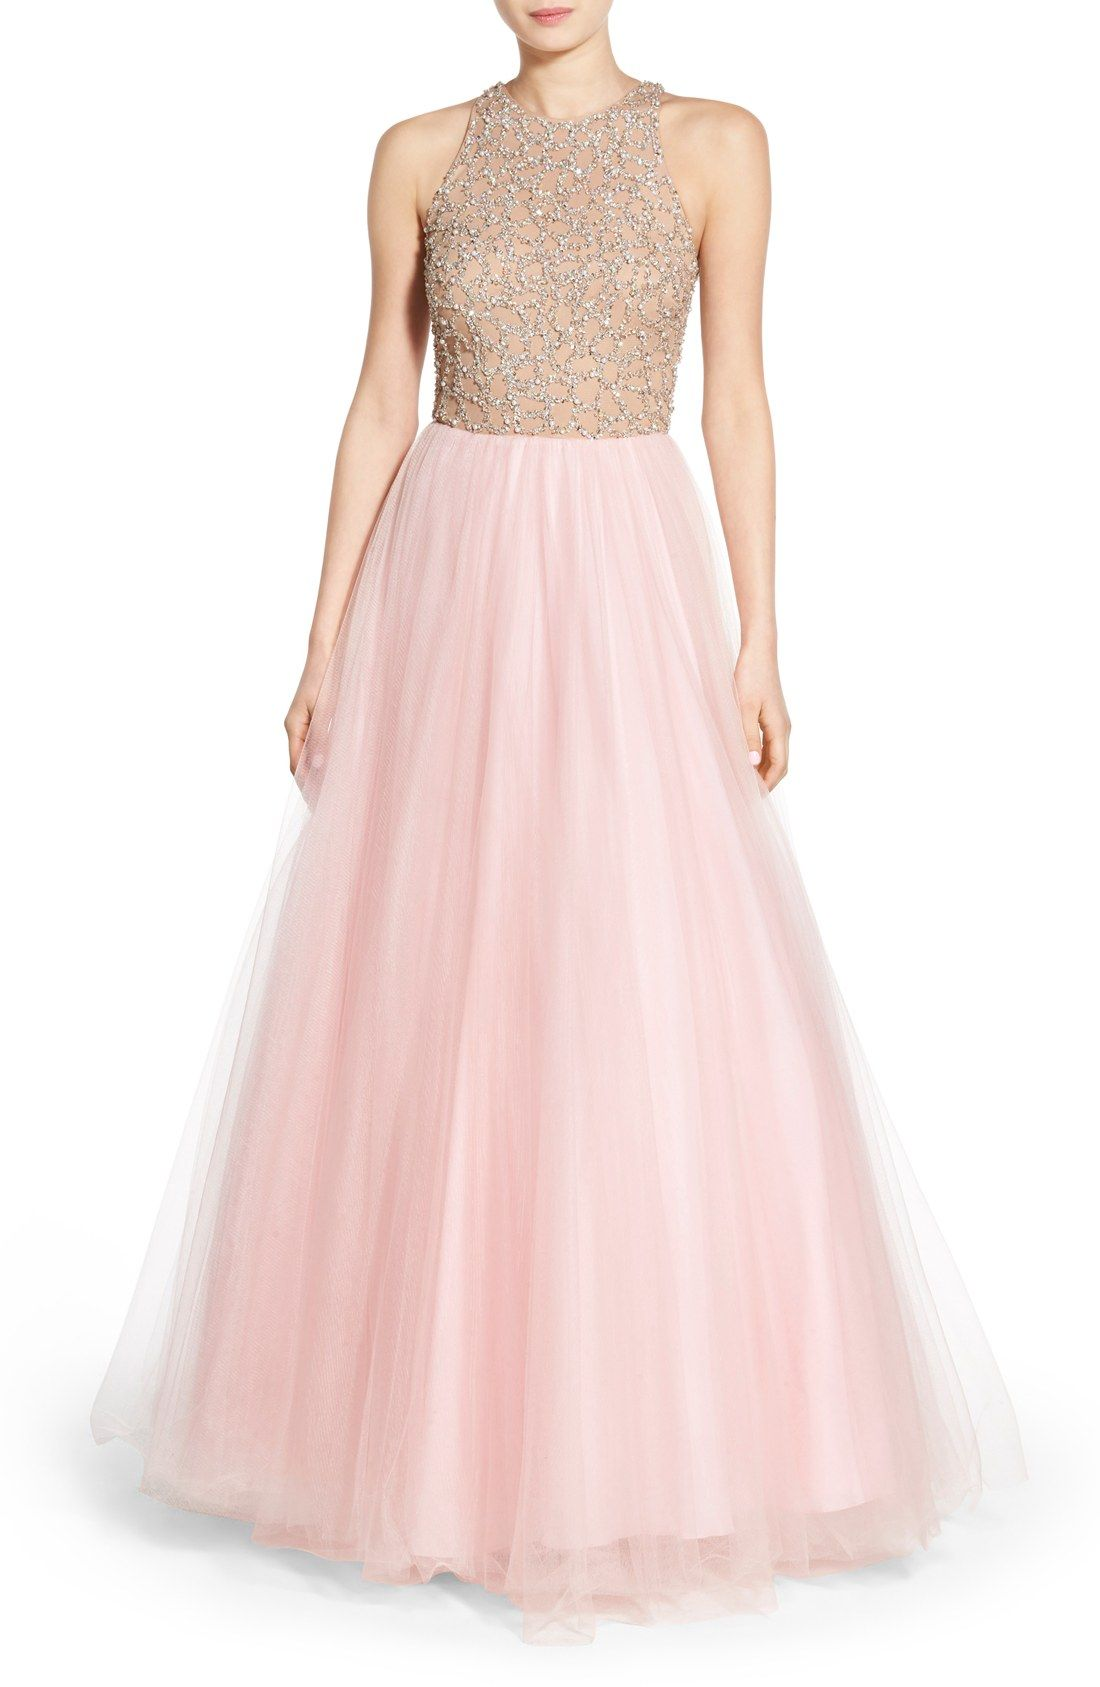 Glamour by Terani Couture Embellished Tulle Ballgown | spinning like ...